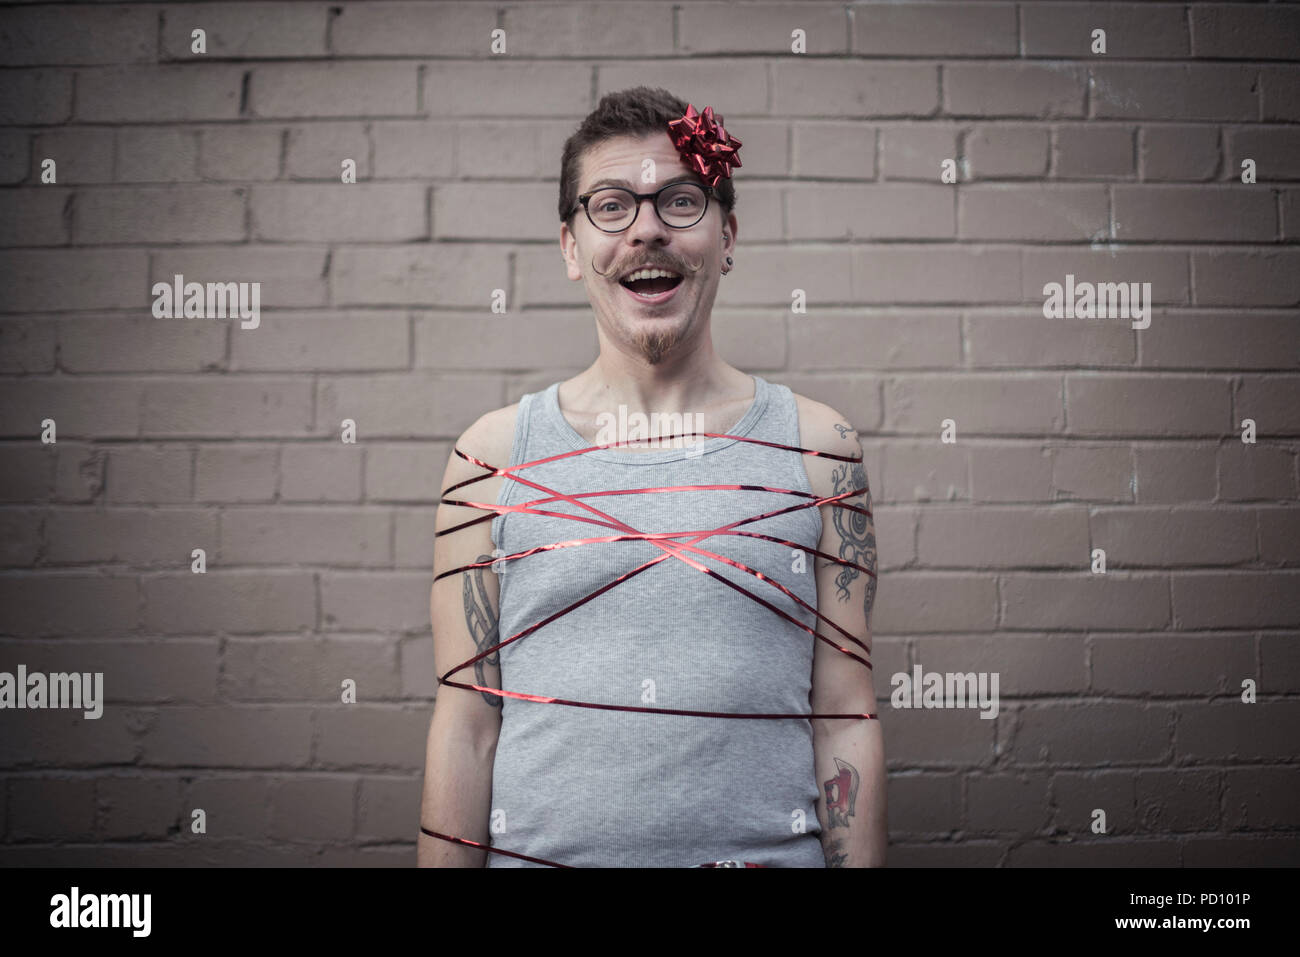 Young white man with tattoos wrapped in a red gift ribbon, with a red bow in the side of the head, curly moustache, and vintage glasses. - Stock Image